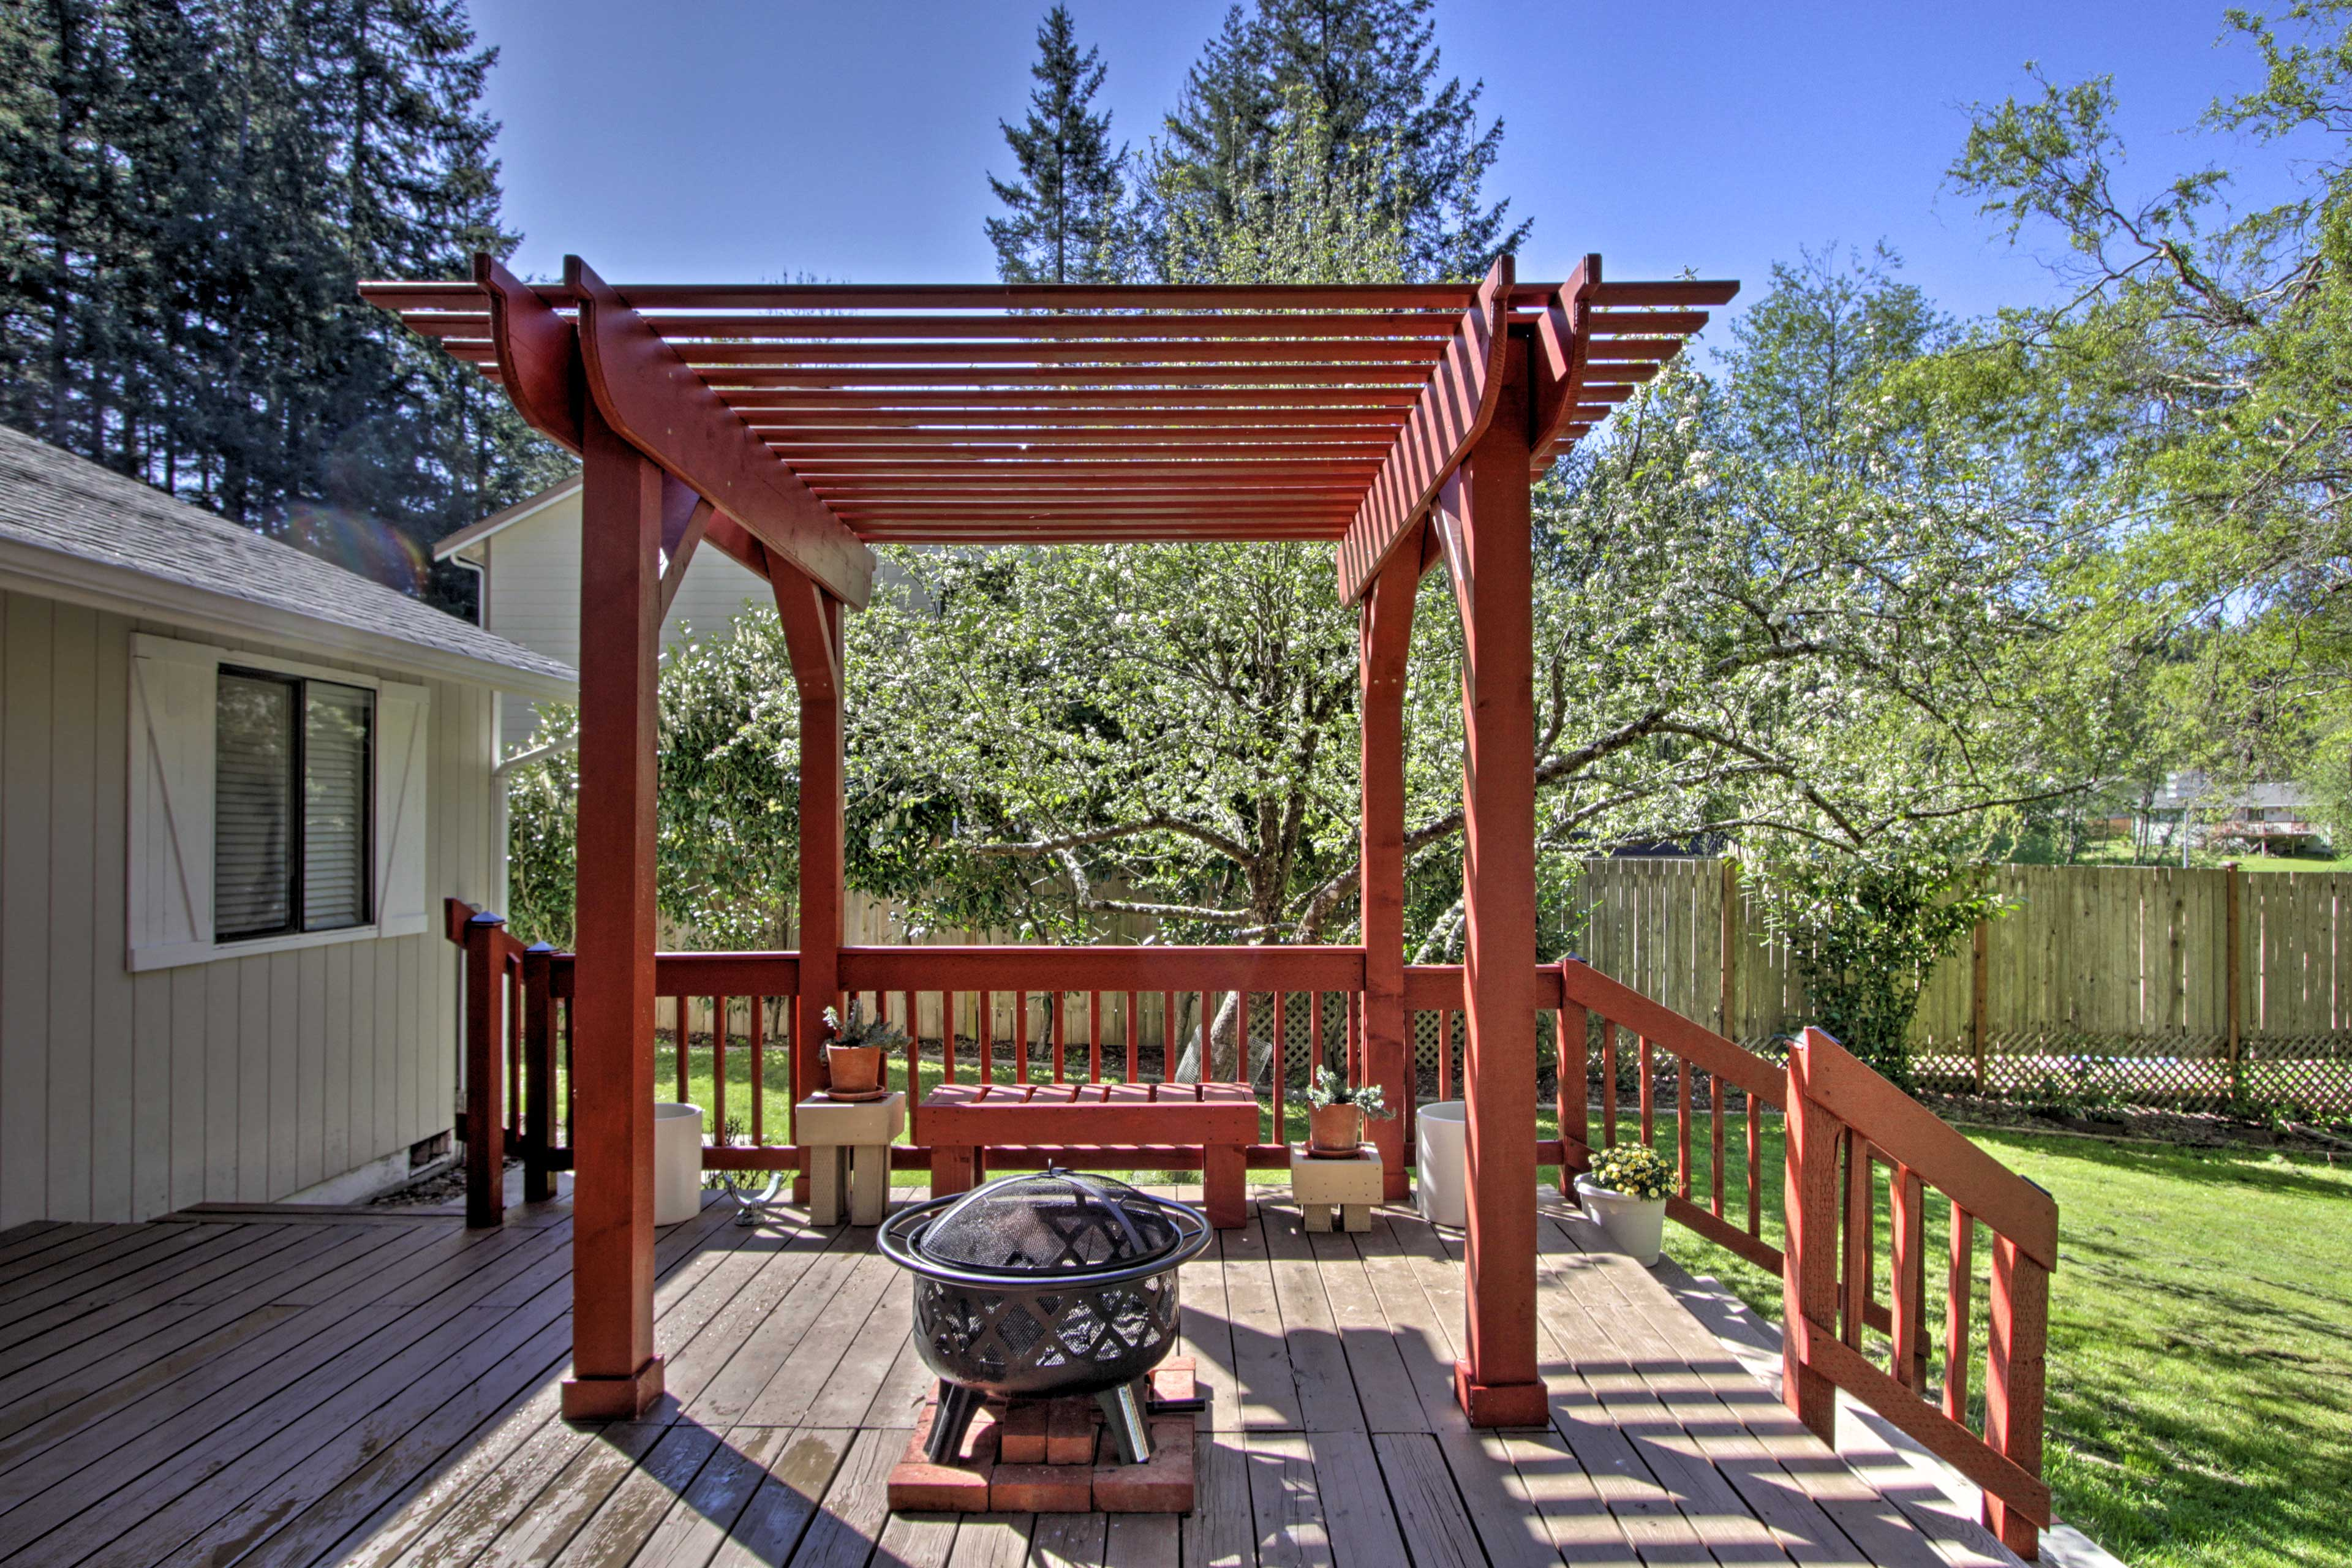 Gather around the pergola fire pit to end your night.